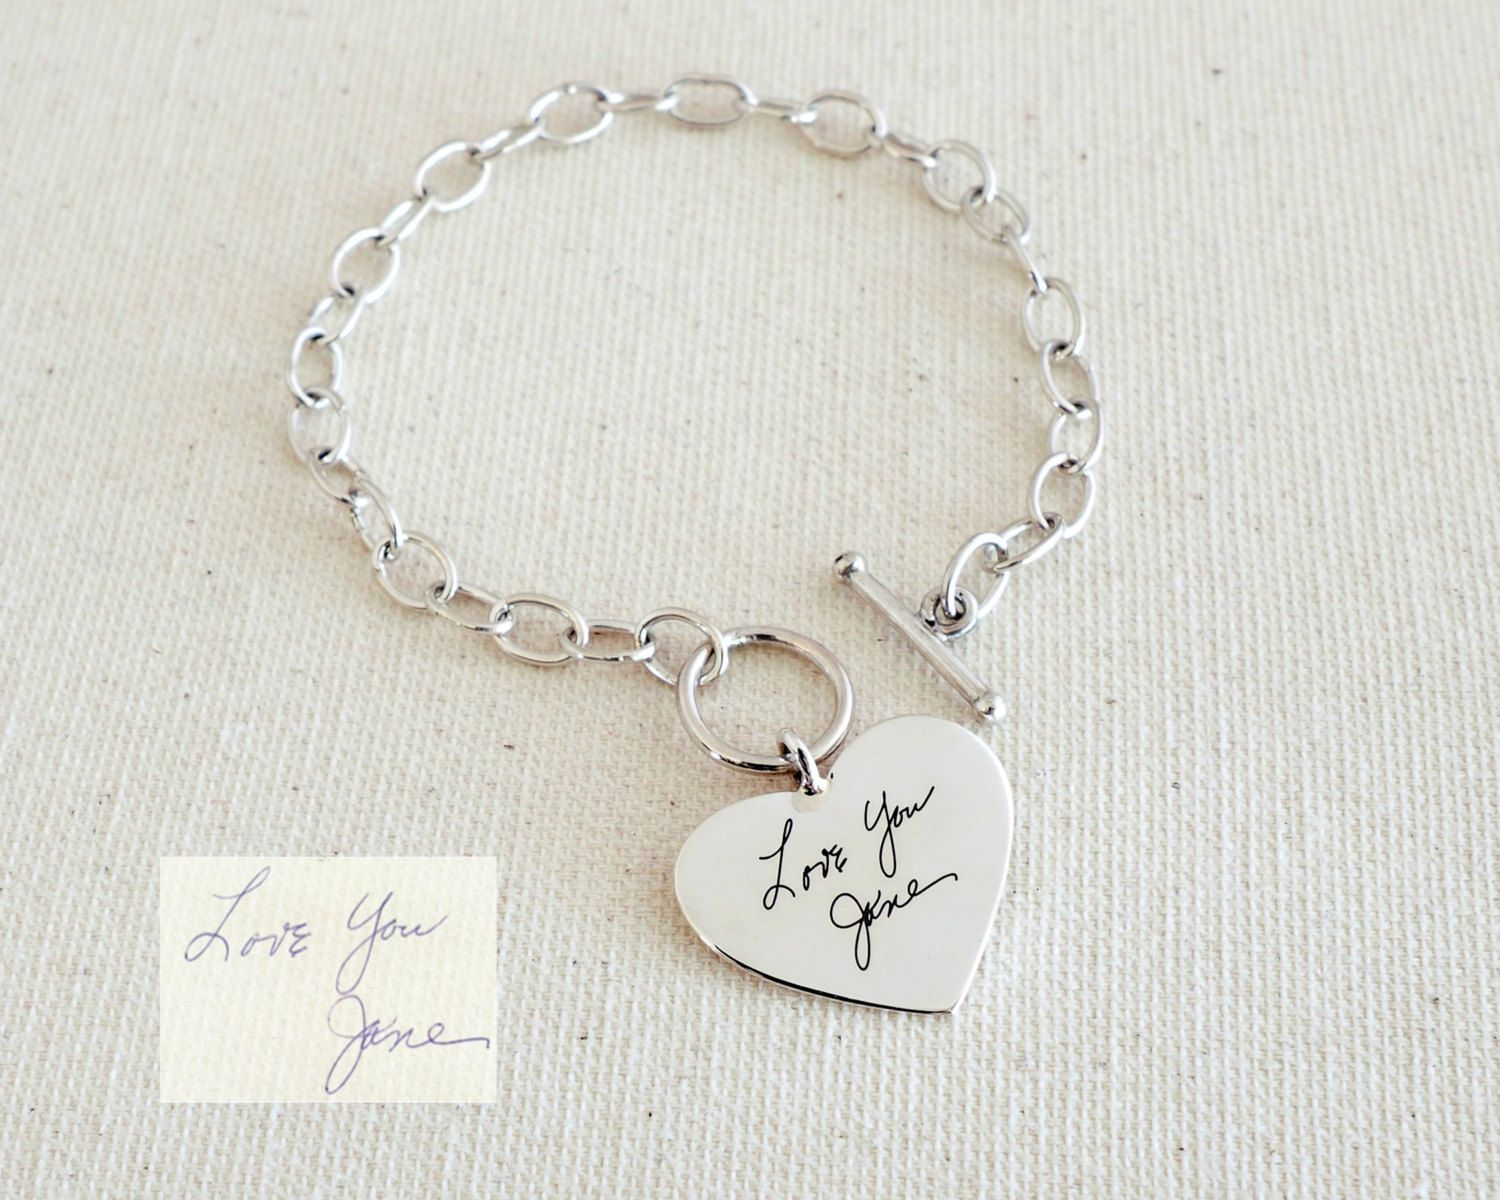 ♥ NEW DESIGN: Engraved Handwriting Bracelet with Heart charm. ♥ Simply use the -ASK A QUESTION- or -CONTACT SHOP OWNER- button to send us a picture or scan of the Signature//Handwriting//Message before or after purchasing. ♥ Messages can be engraved on two sizes of the charm with an additional fee - $8  • If you want engraving on one side of the bar, choose ONE SIDED*. If you want engraving on both sides, choose DOUBLE SIDED*. Feel free to email us for details…